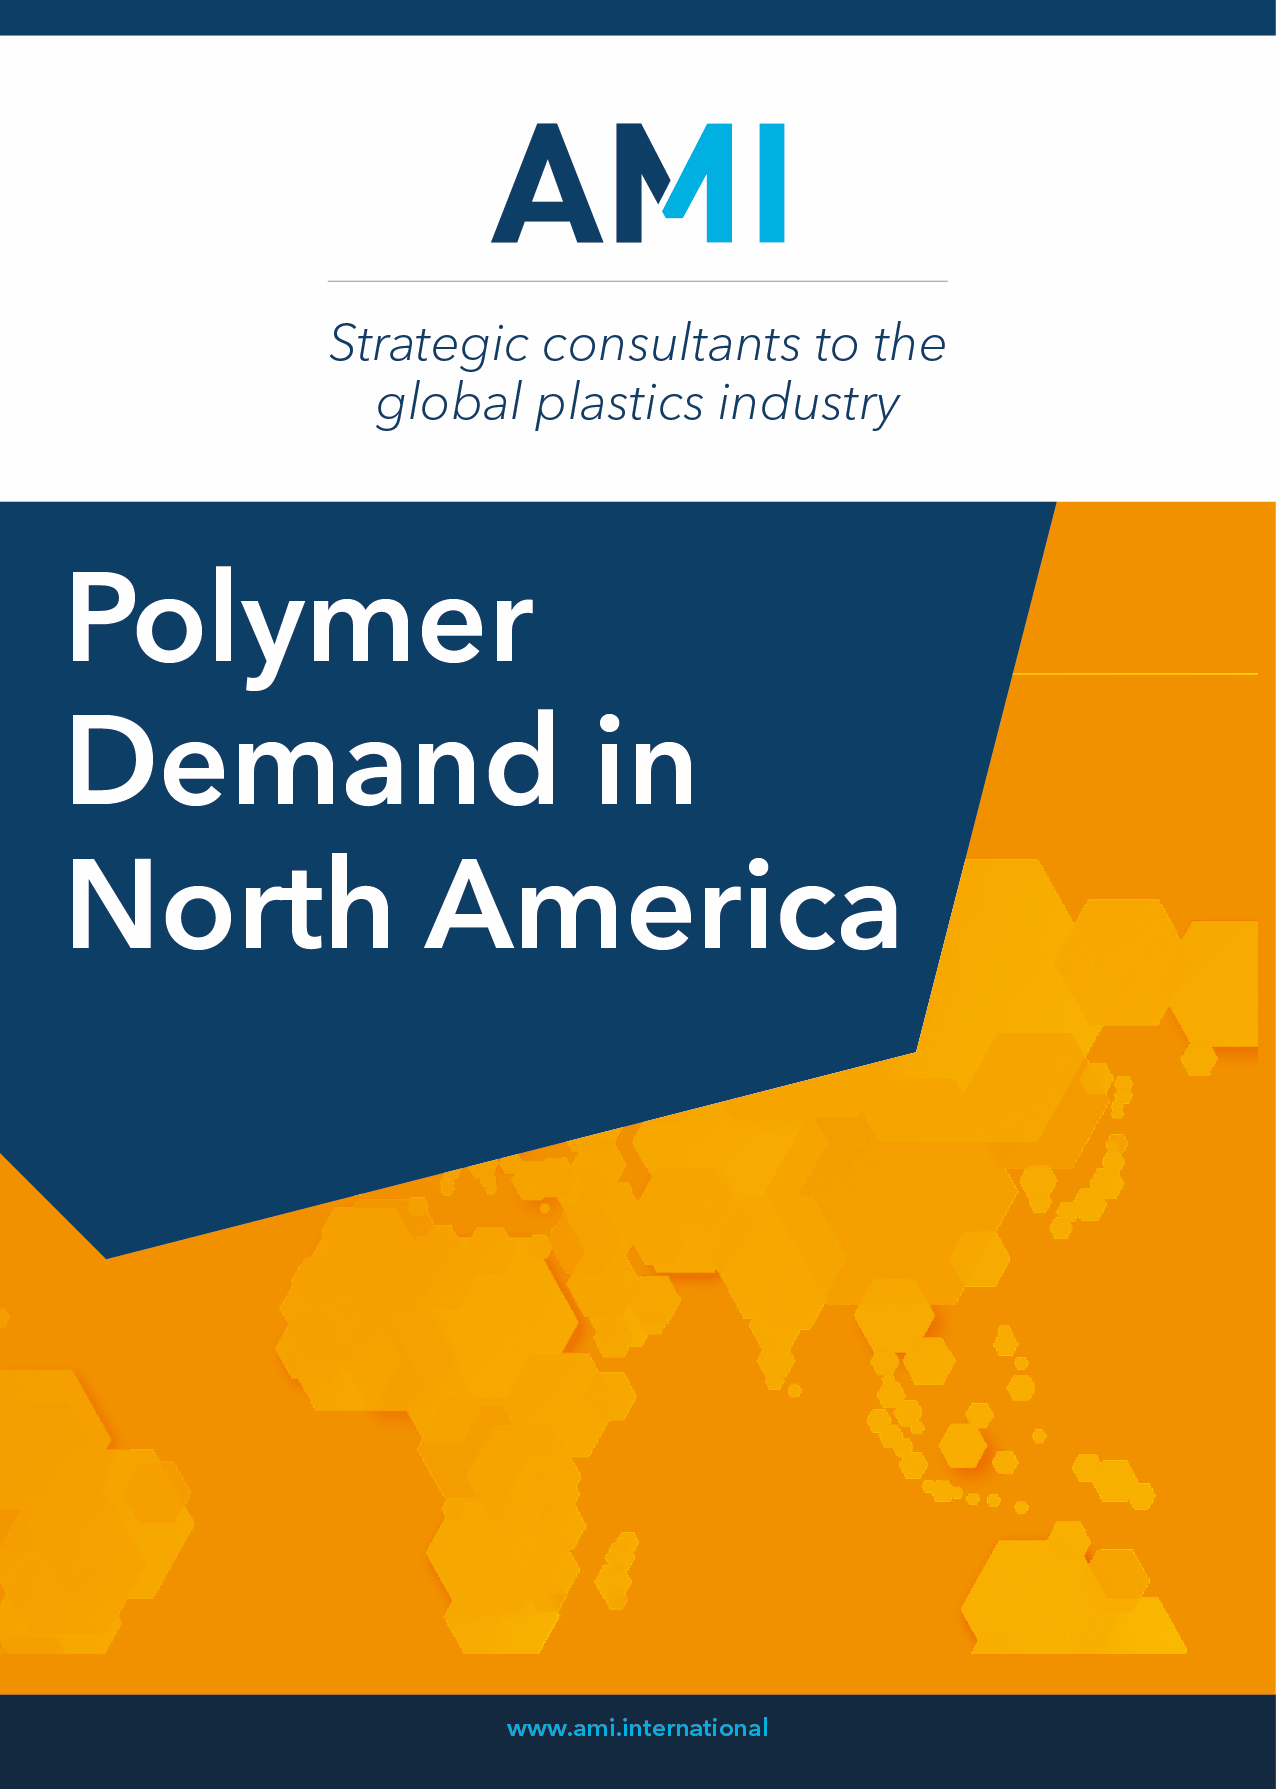 Polymer demand in North America 2019